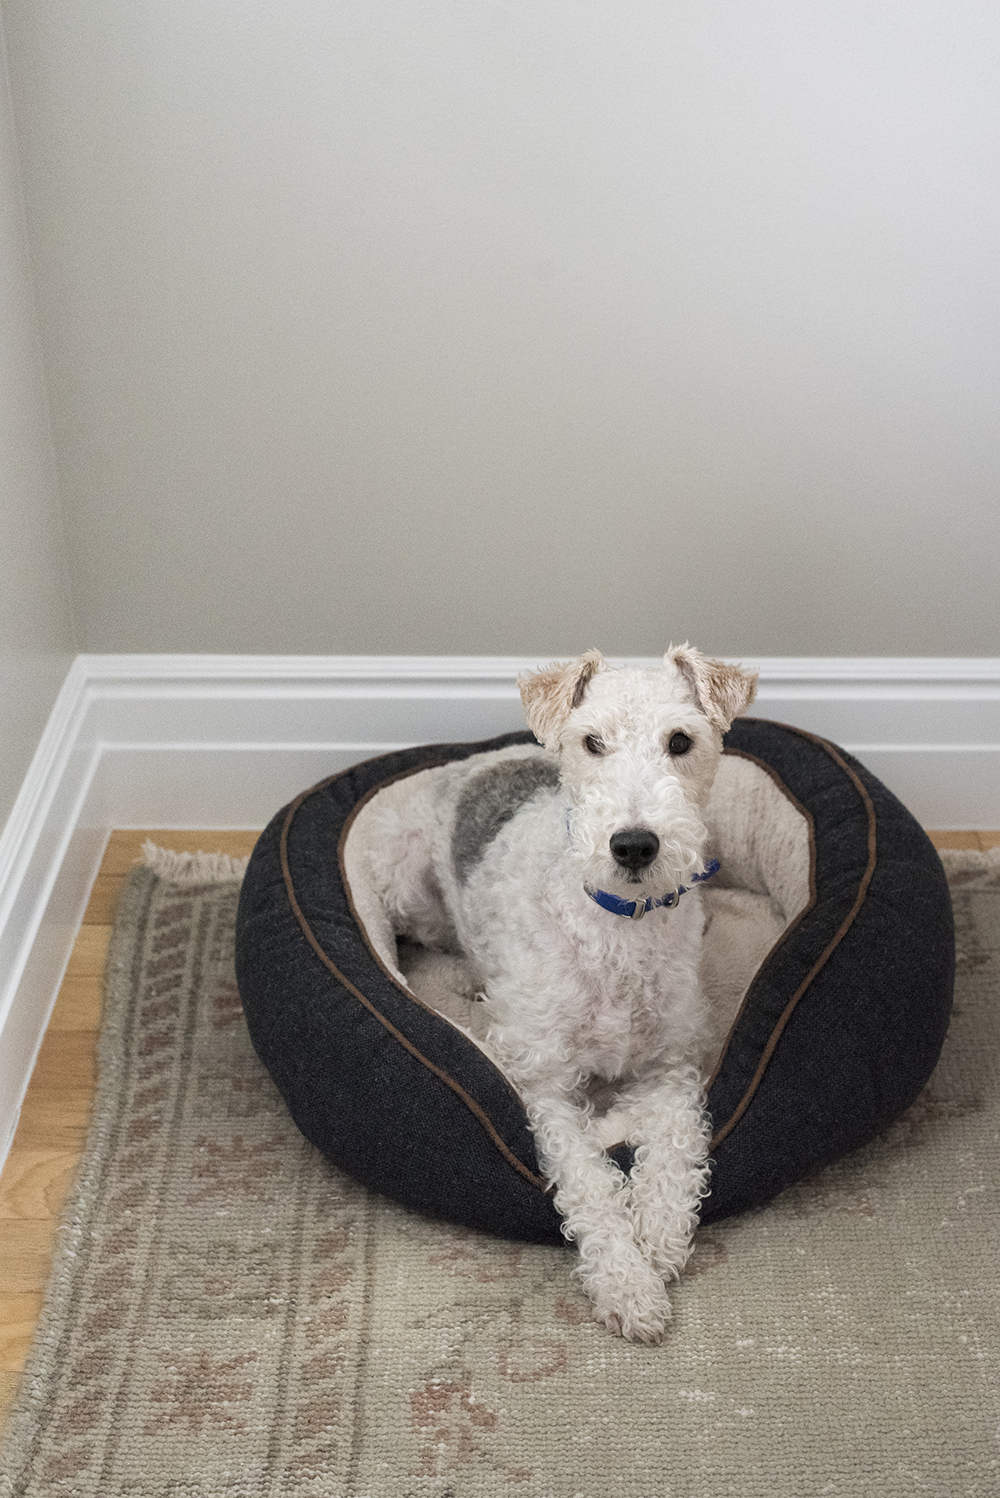 Amazon Finds : Dog Beds - roomfortuesday.com